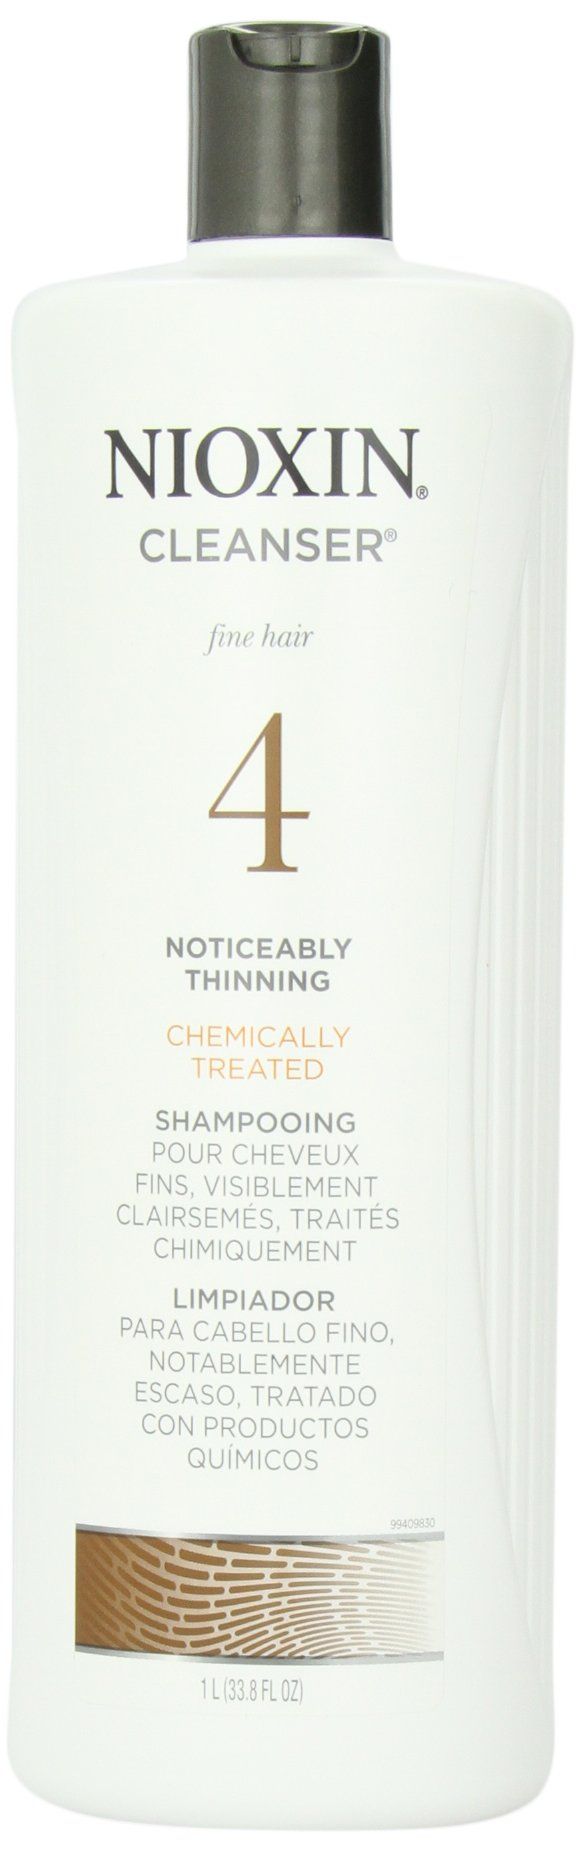 Nioxin System 4 Cleanser for Fine Chemically Treated Hair, 33.8 Ounce by Nioxin